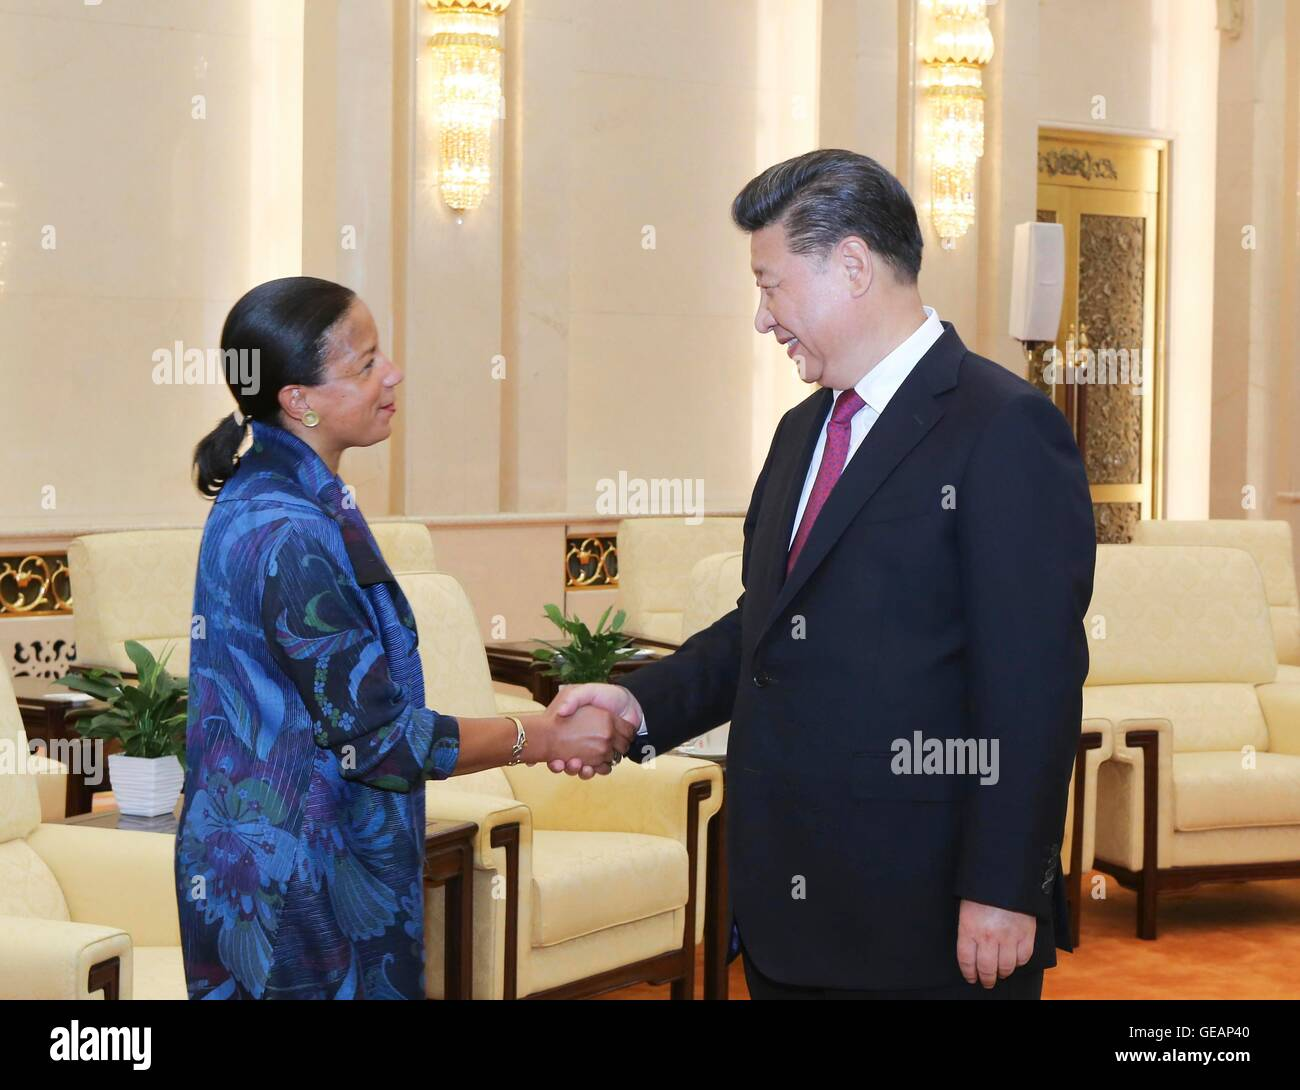 Beijing, China. 25th July, 2016. Chinese President Xi Jinping (R) meets with U.S. National Security Advisor Susan - Stock Image